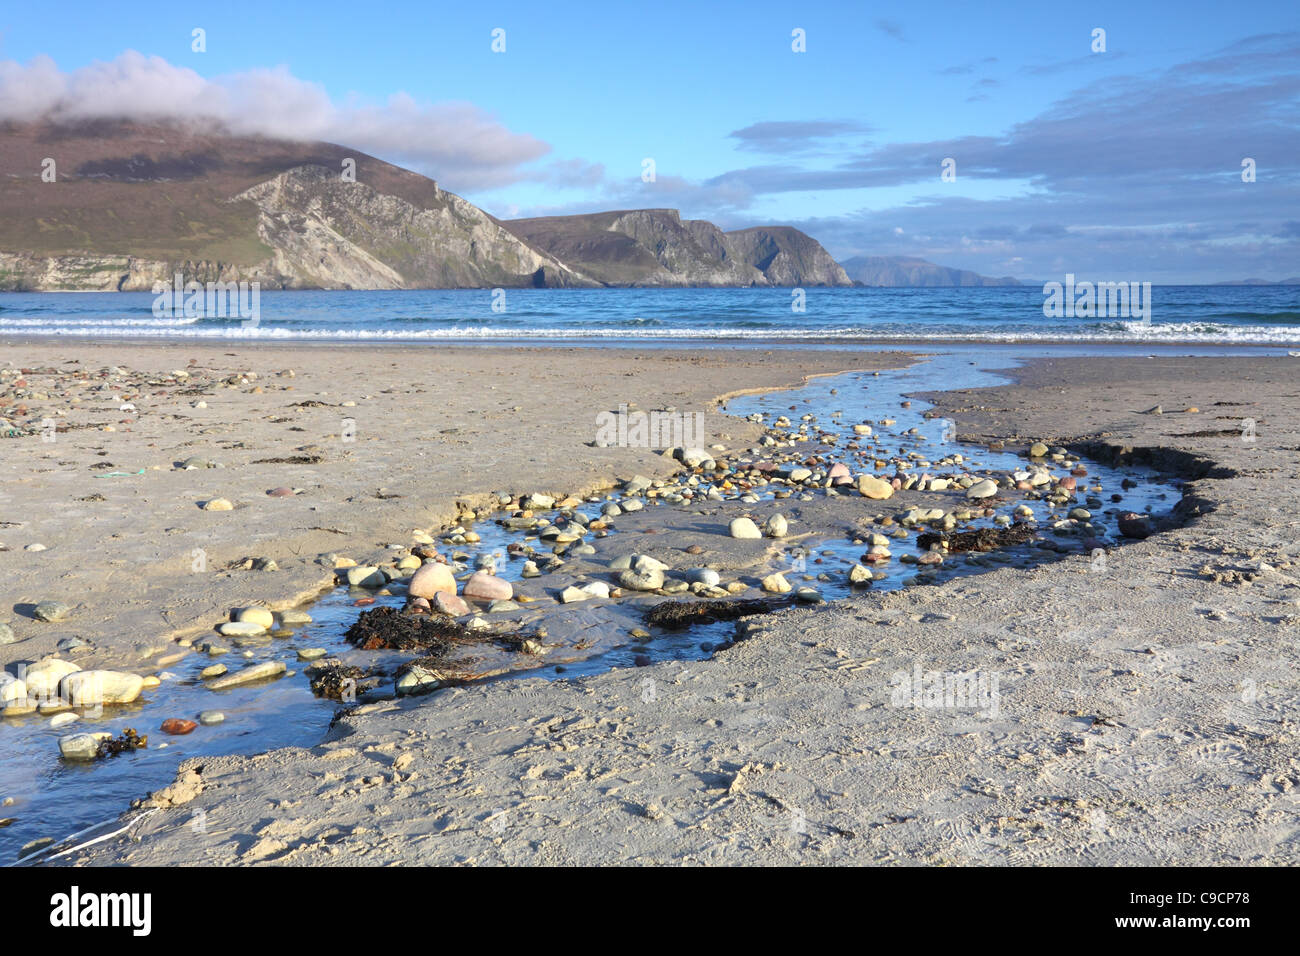 Keel Strand beach on Achill island, County Mayo, Ireland, with the Minaun cliffs in the distance - Stock Image